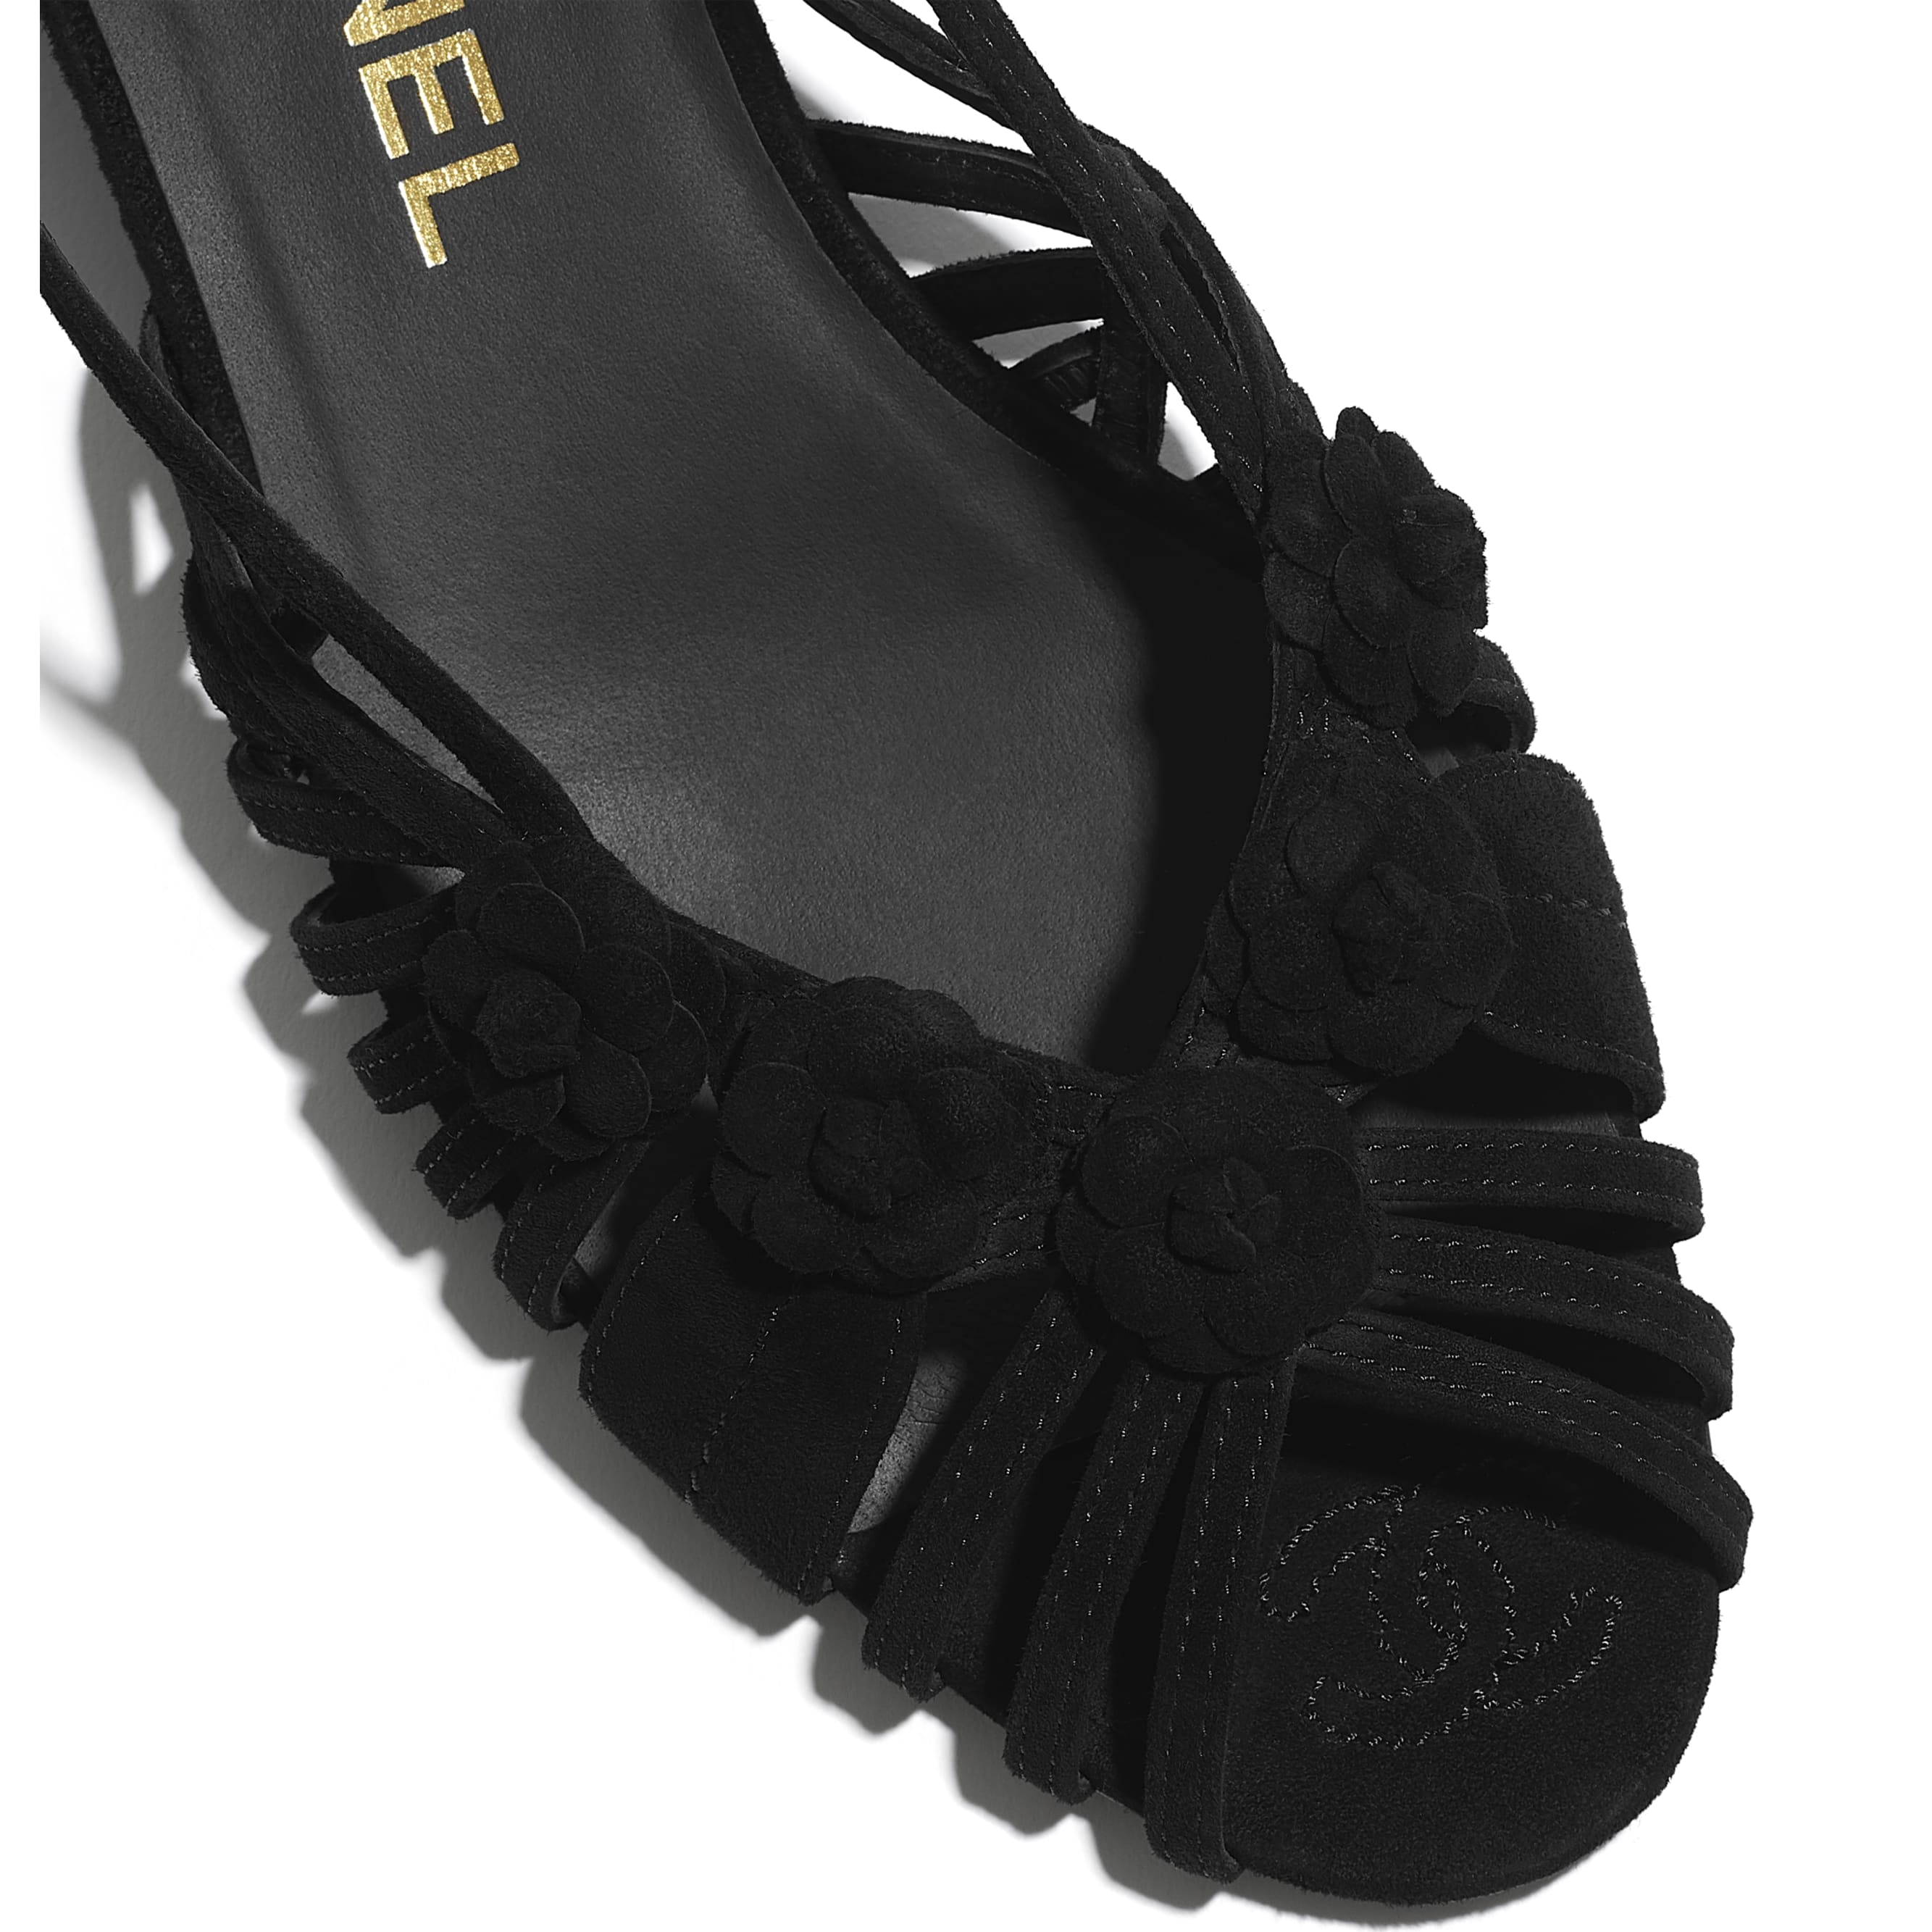 Sandals - Black - Suede Kidskin - CHANEL - Extra view - see standard sized version